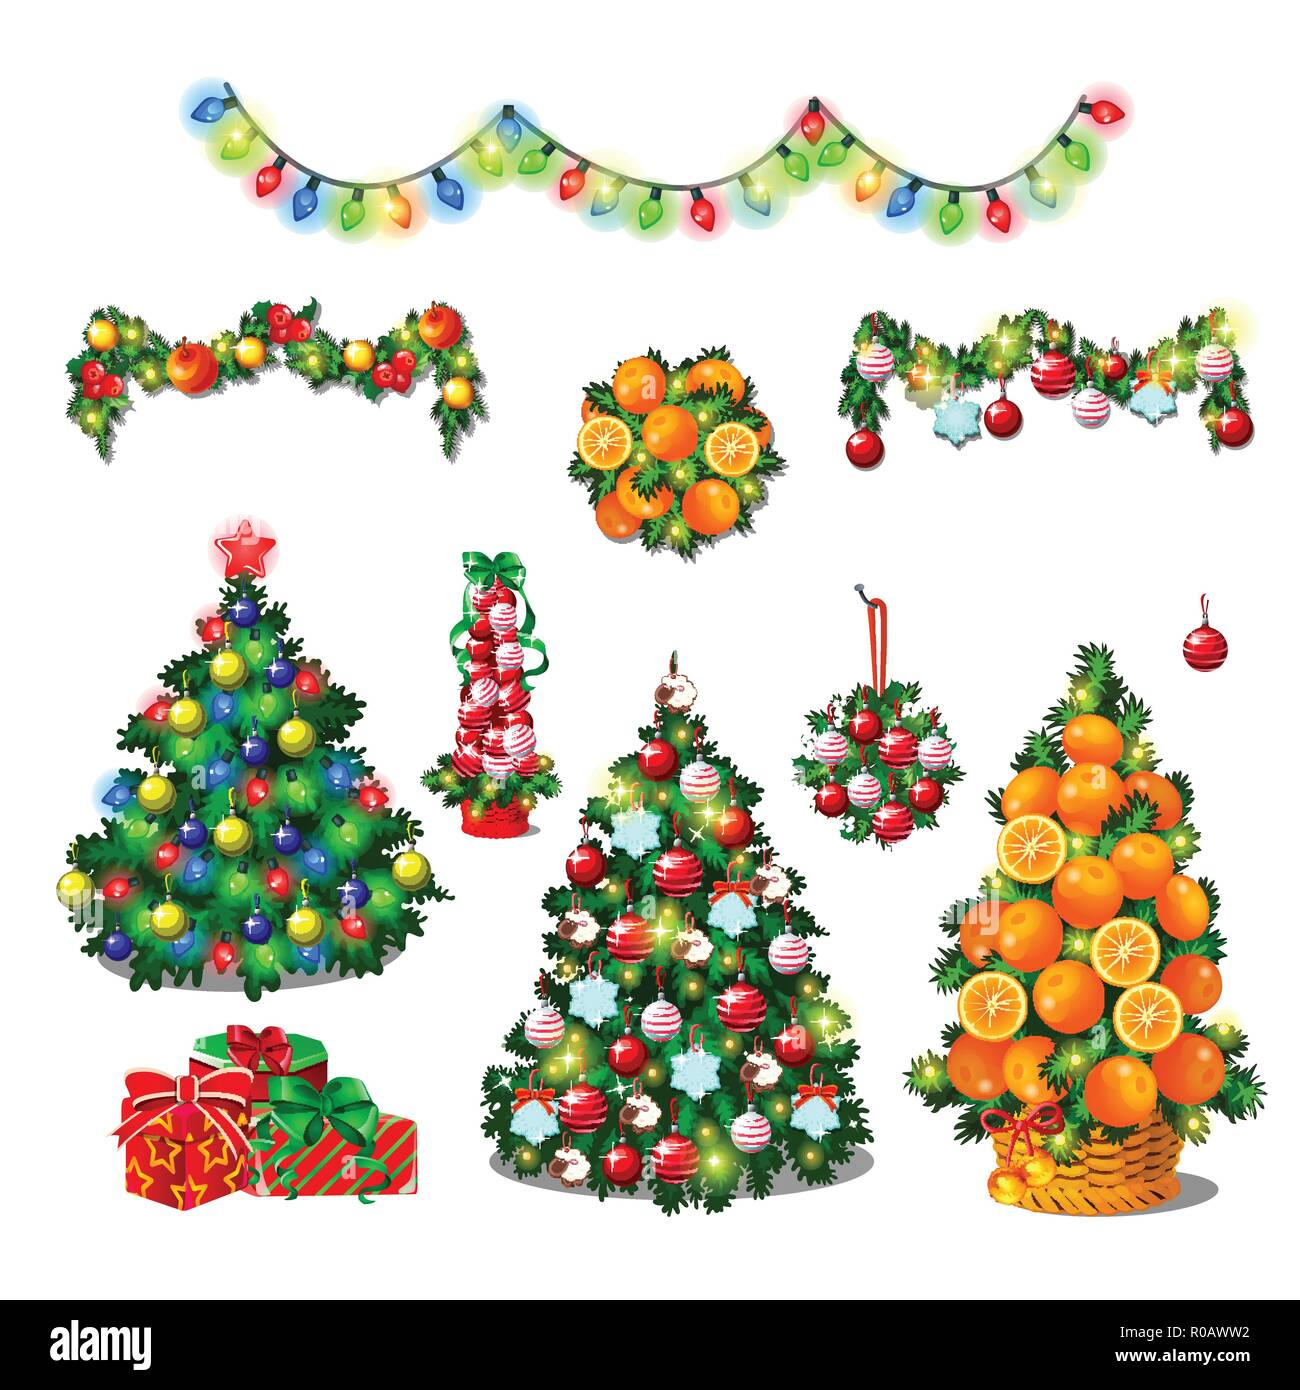 Set Of Cute Christmas Tree Colorful Garlands New Year Gift Boxes With Ribbon Bow Classic Christmas Decorations Wreath Baubles Sketch For Greeting Card Festive Poster Party Invitation Vector Stock Vector Image